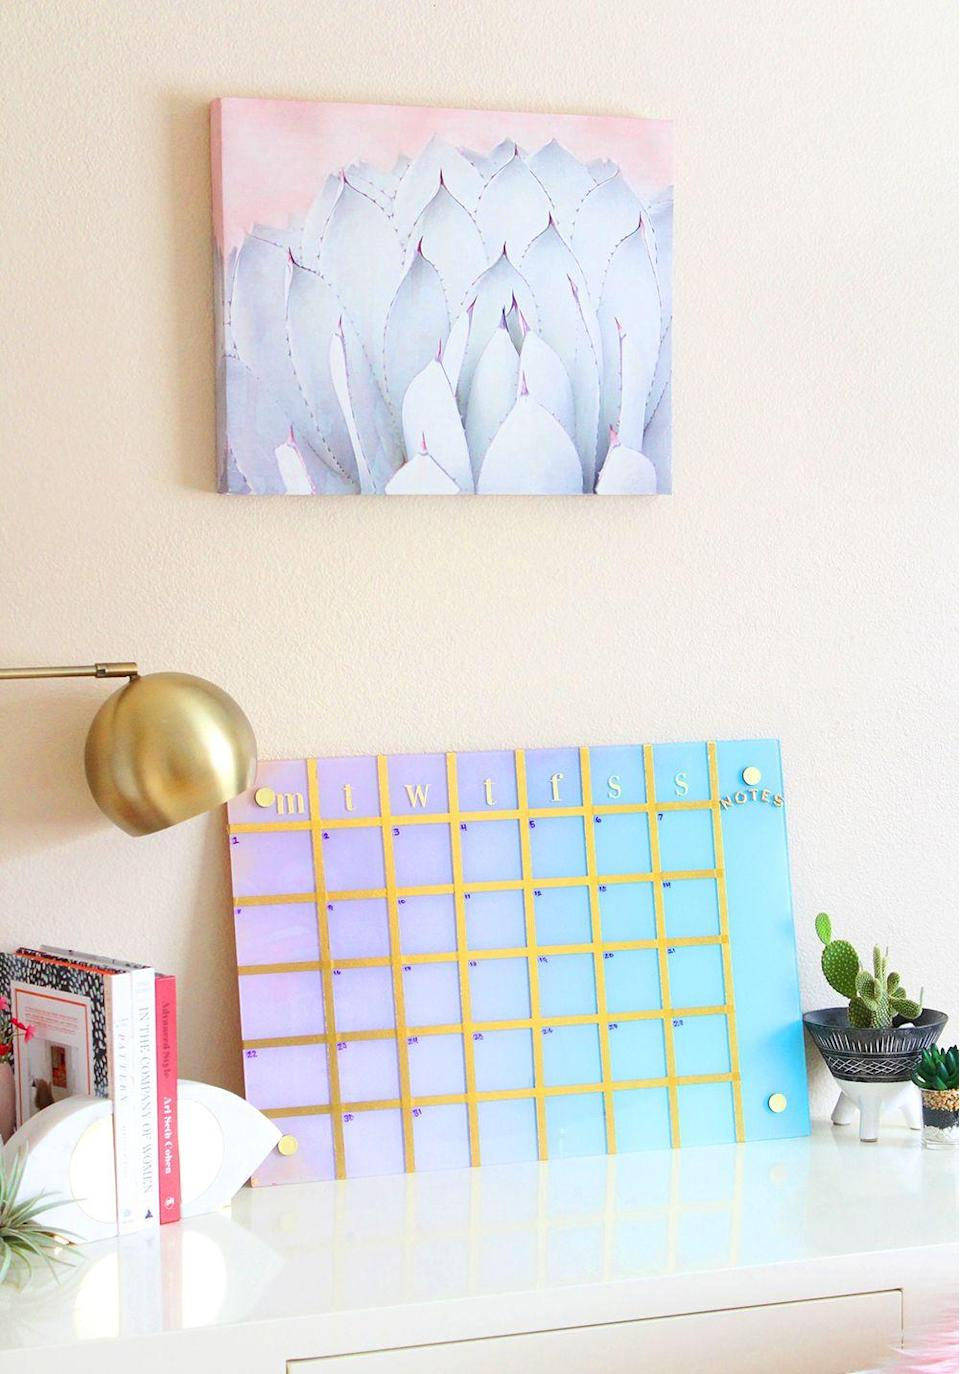 """<p>Rumor has it that if her calendar looks like wall art, she might actually look at it every once and while. It's amazing what washi tape can do.</p><p><em><a href=""""https://blissmakes.com/diy-gradient-calendar/"""" rel=""""nofollow noopener"""" target=""""_blank"""" data-ylk=""""slk:Get the tutorial at BlissMakes »"""" class=""""link rapid-noclick-resp"""">Get the tutorial at BlissMakes »</a></em> </p>"""